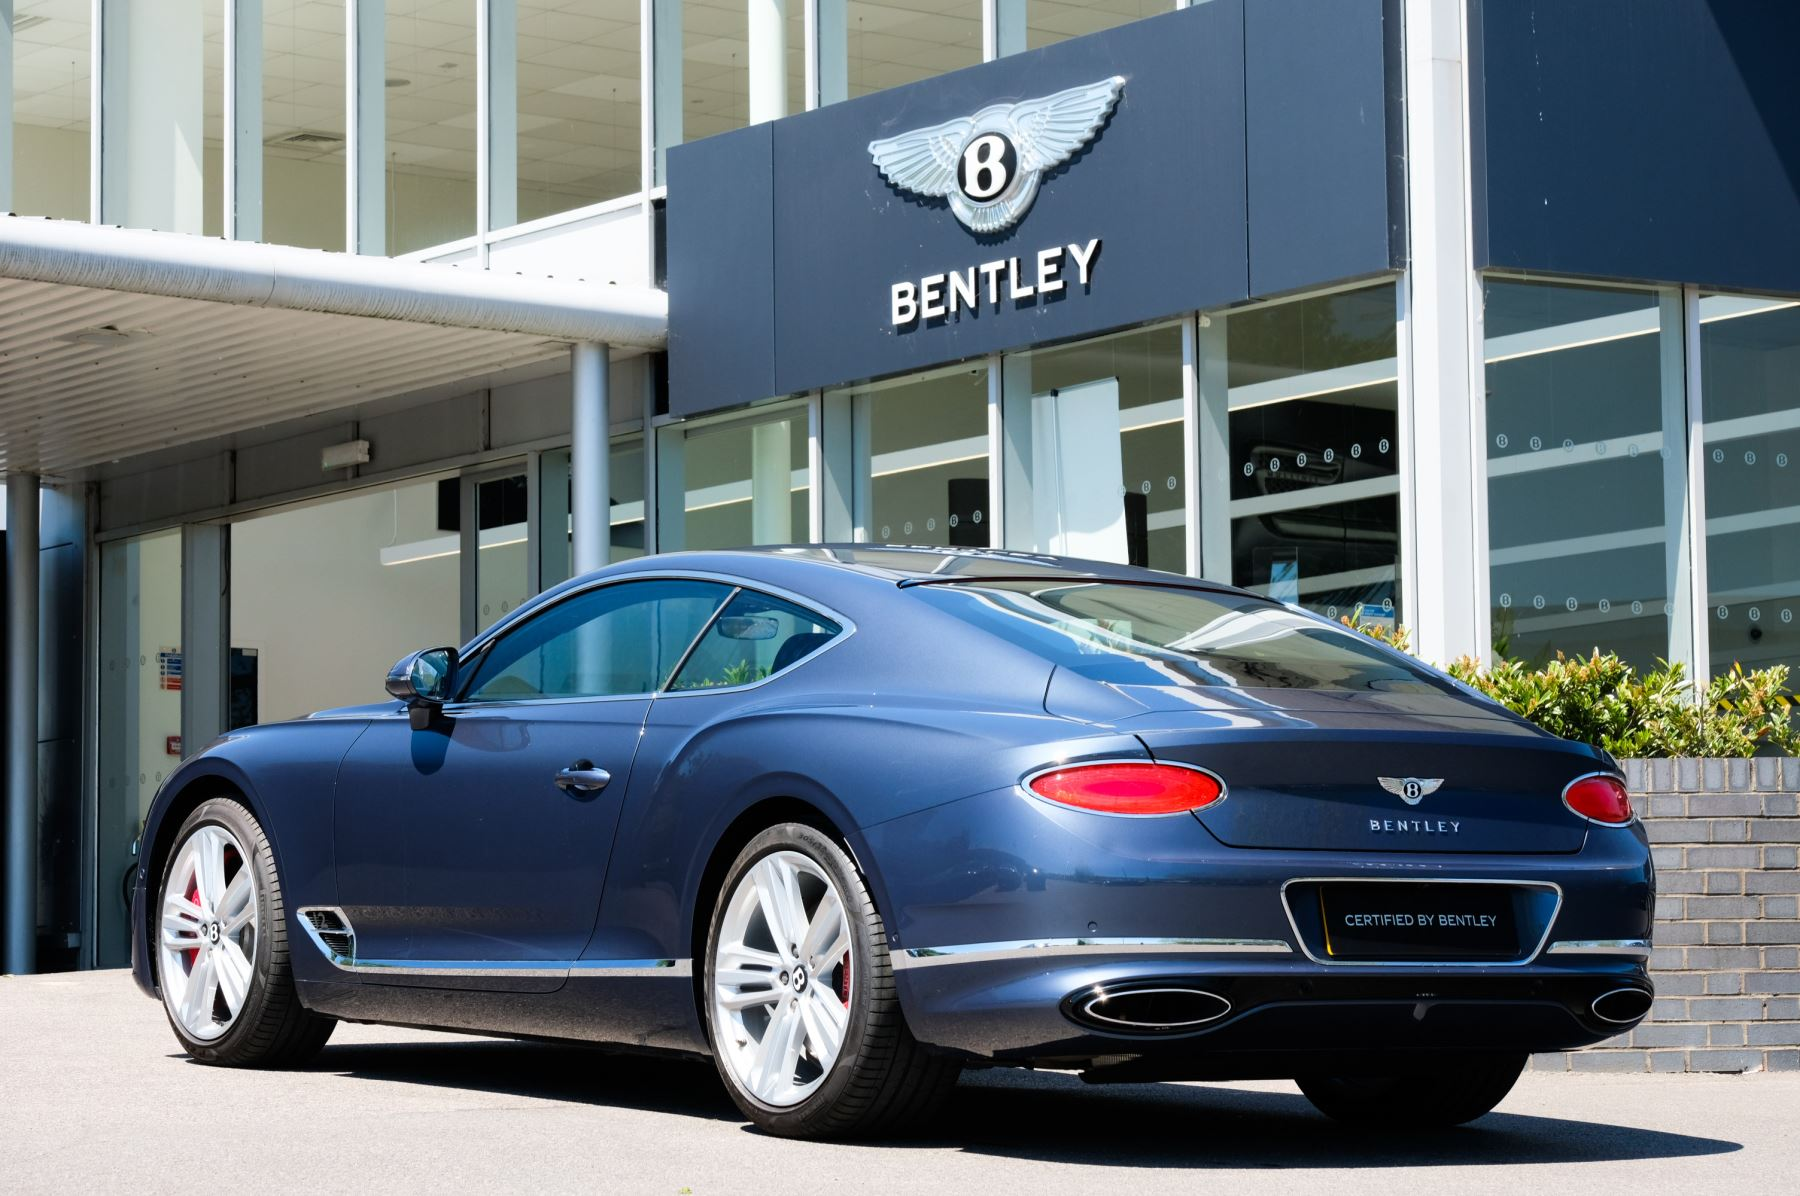 Bentley Continental GT 6.0 W12 - CITY + TOURING SPECIFICATION image 5